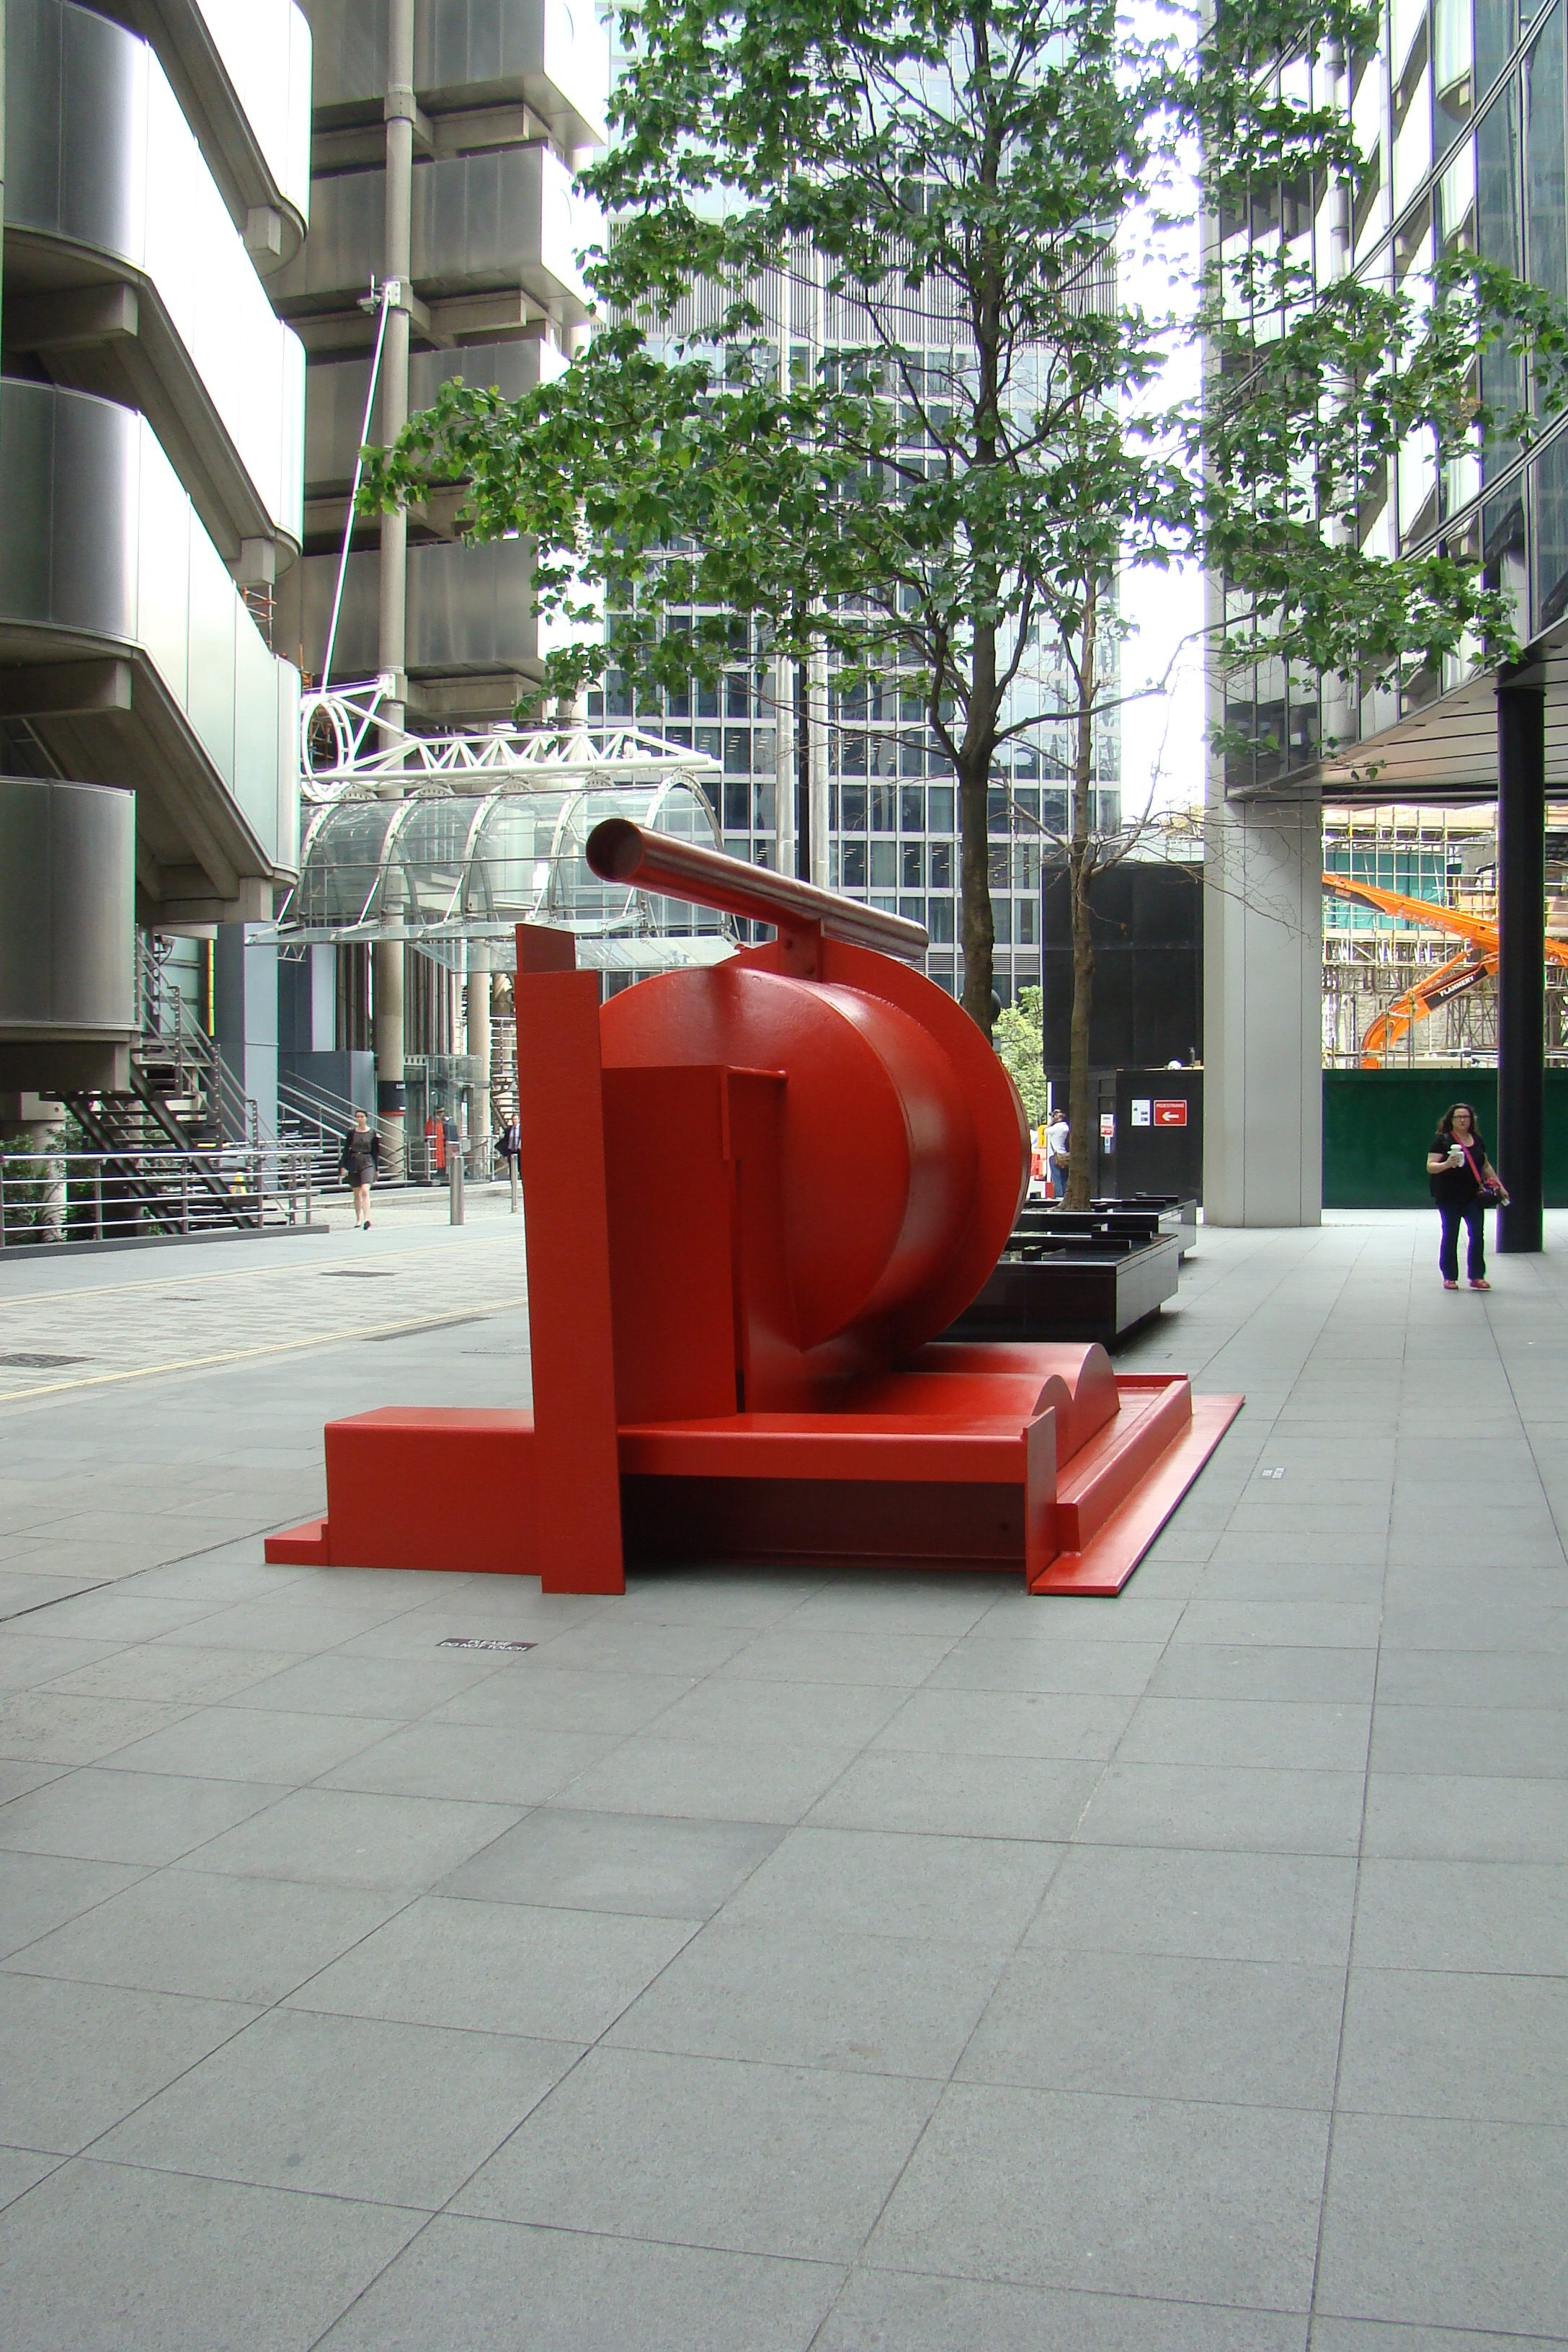 Sculpture in the City 2016, Londra - Anthony Caro